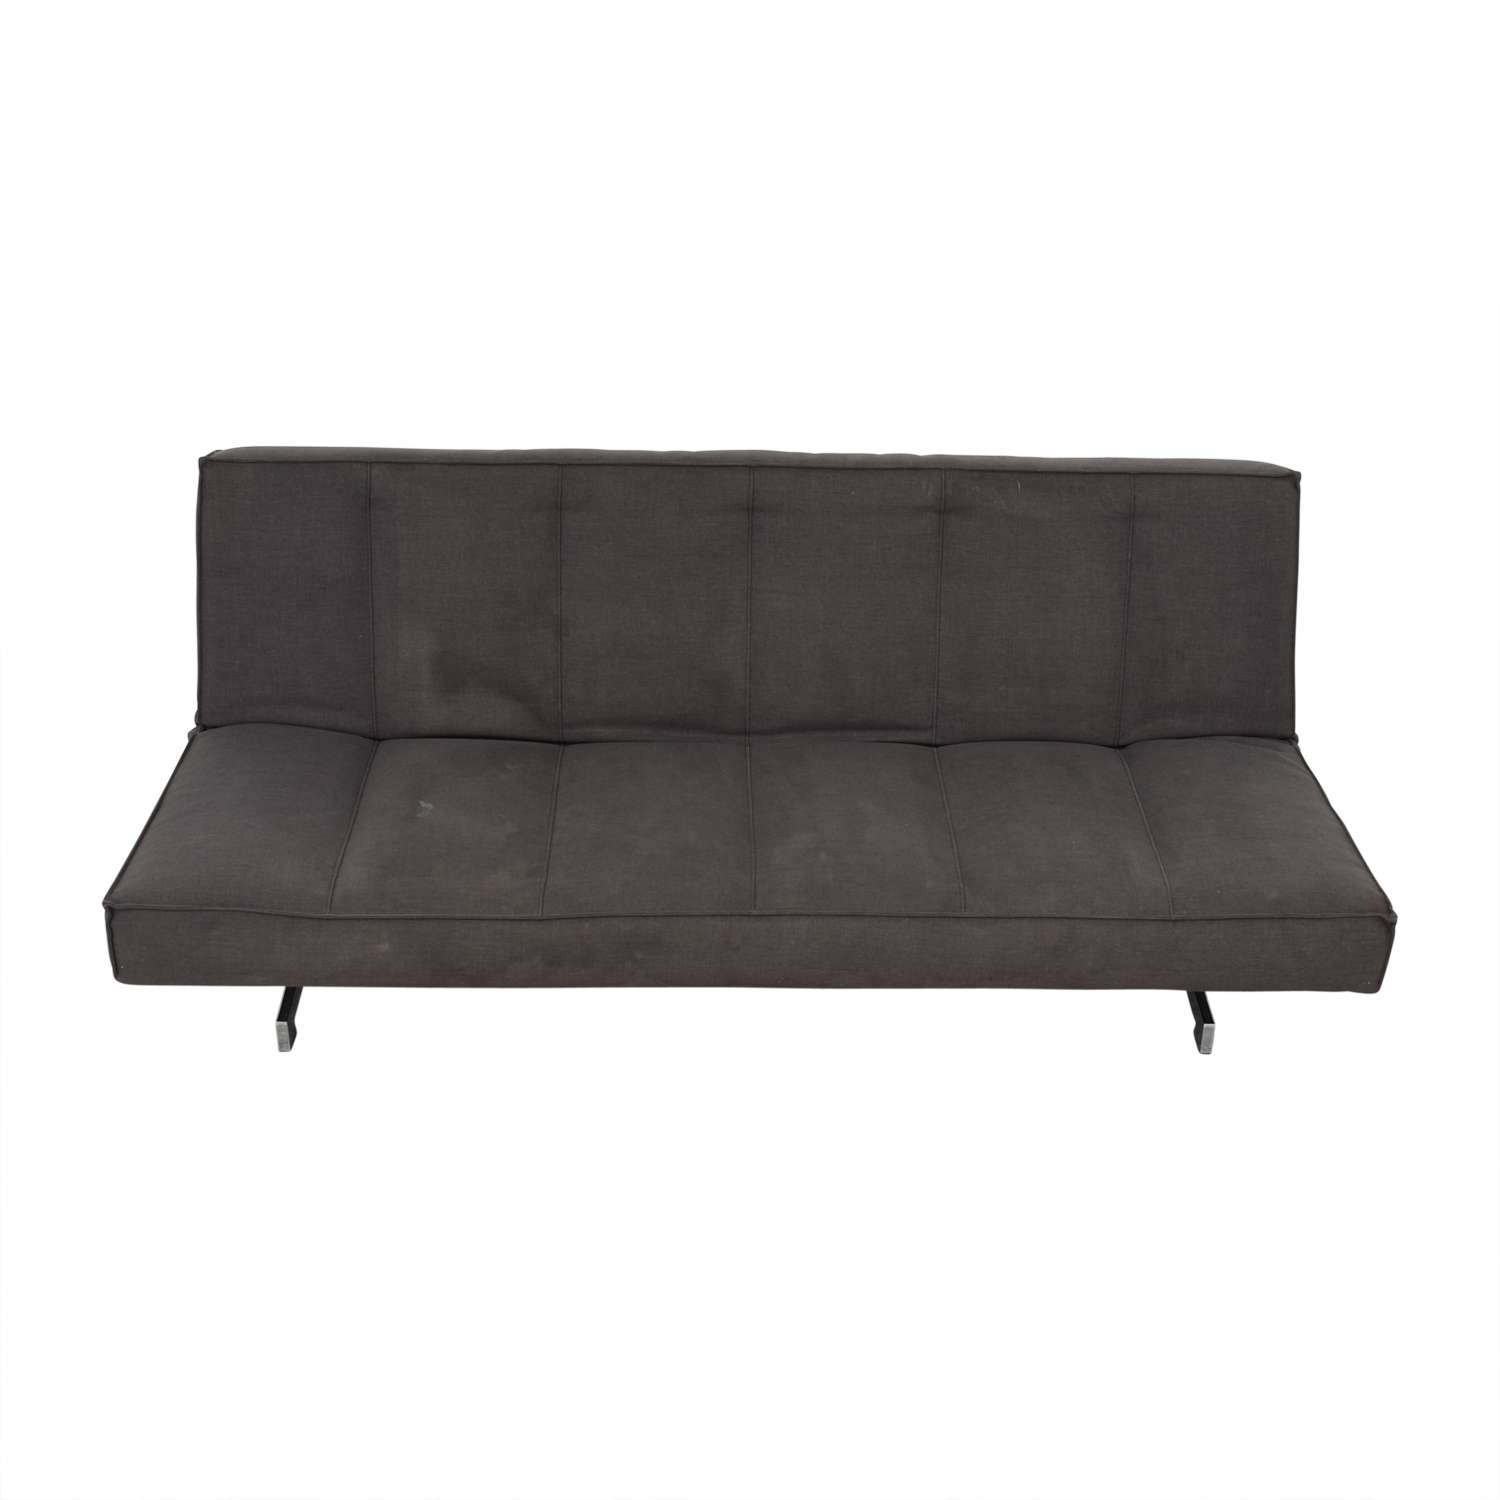 CB2 CB2 Flex Gravel Sleeper Sofa nj